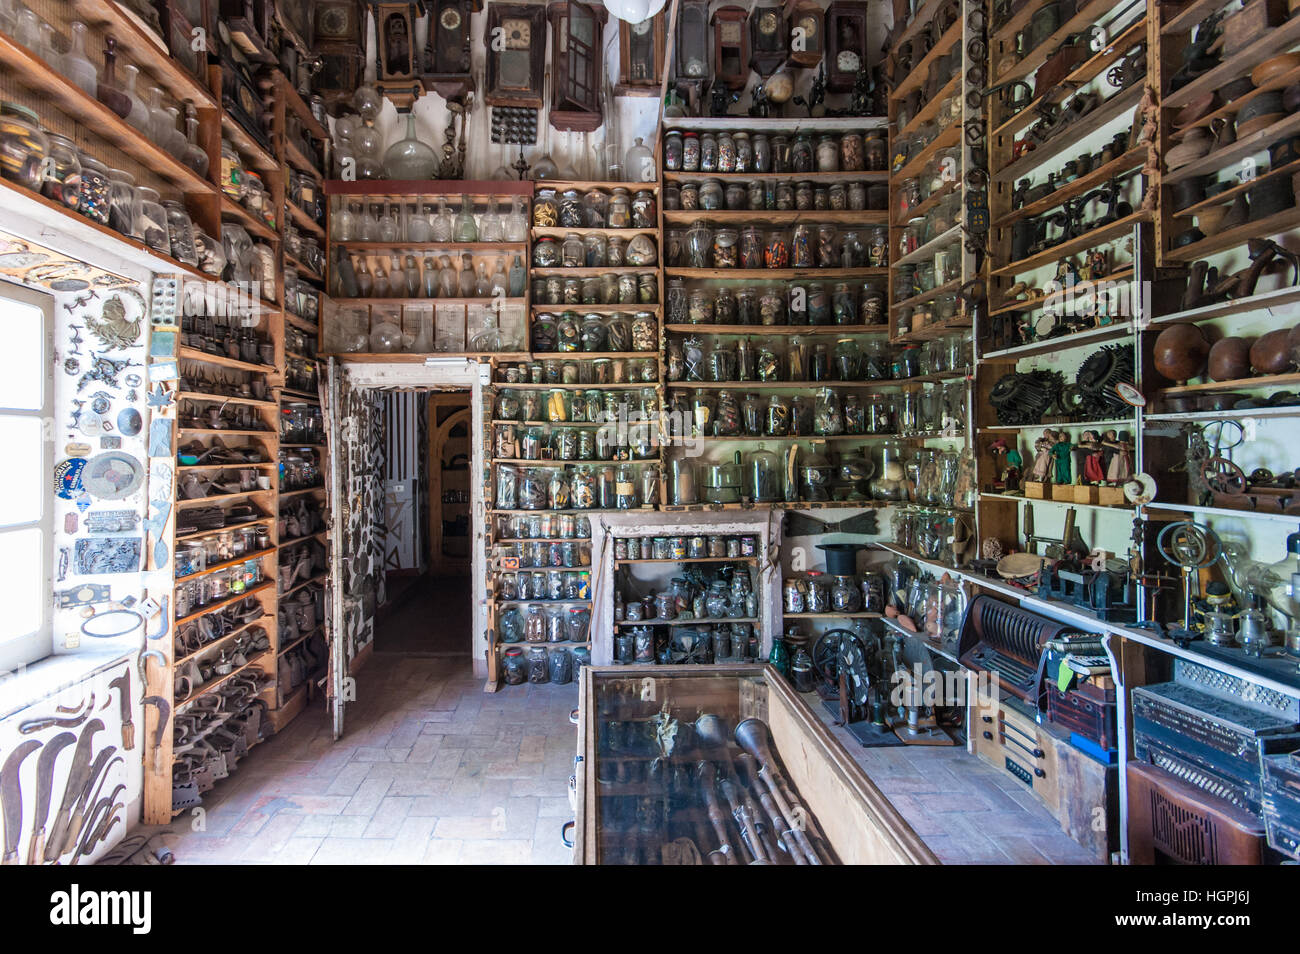 Interior view of a gallery of the Museo Guatelli ethnographic museum near Parma, Italy Inexhibit magazine - Stock Image